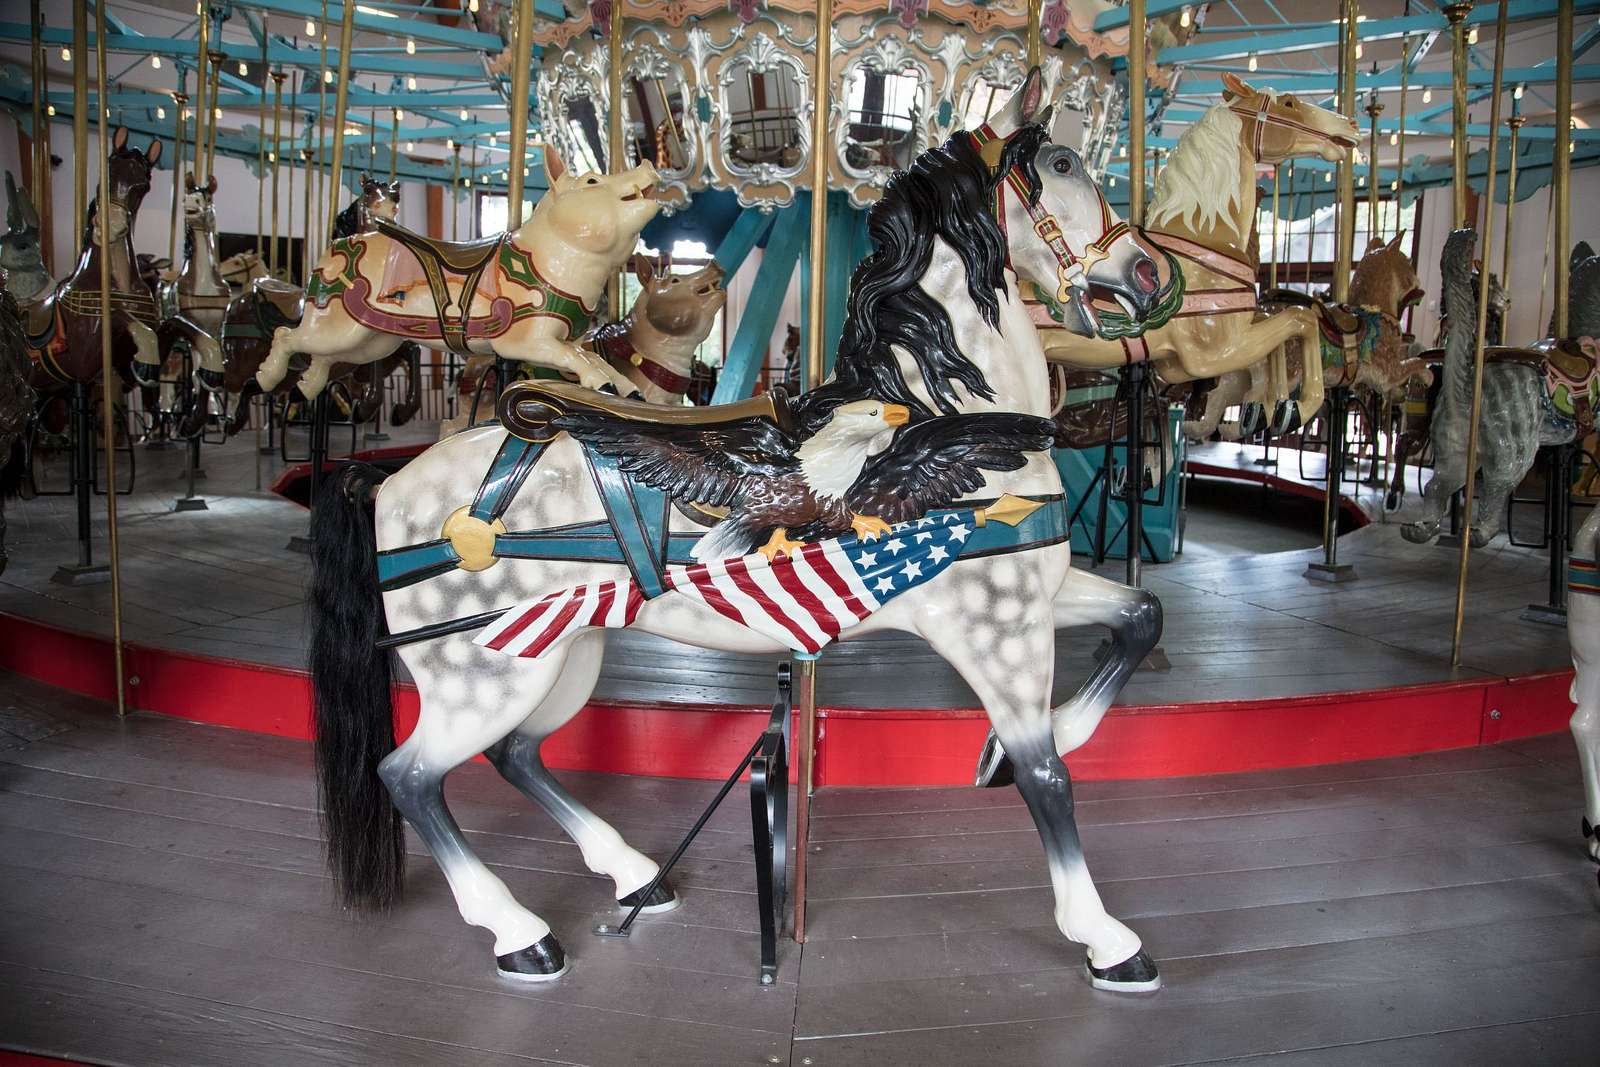 The Pullen Park Carousel in the civic park of the same name in Raleigh, the capital city of North Carolina